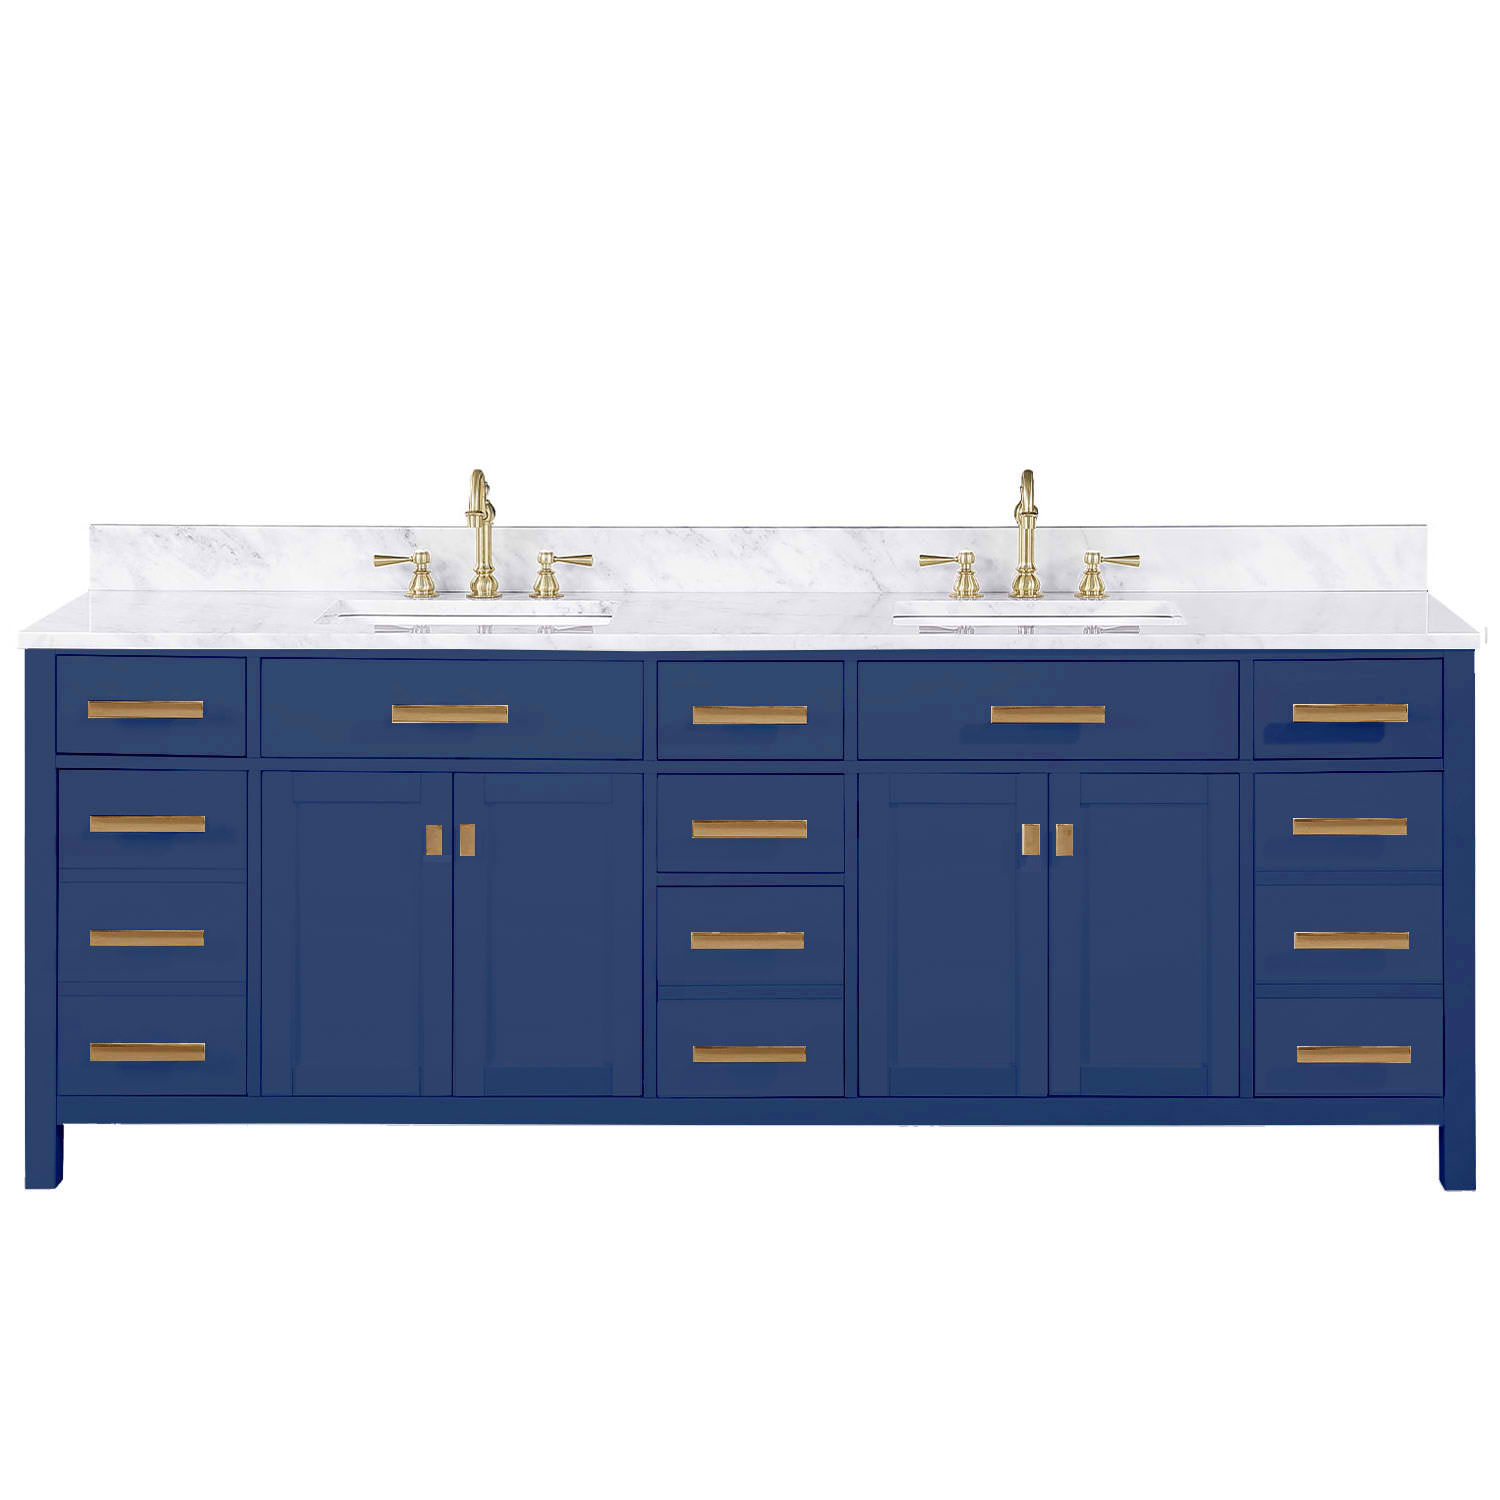 "Modern 84"" Double Sink Vanity with Carrara Marble Counterop in Blue Finish"